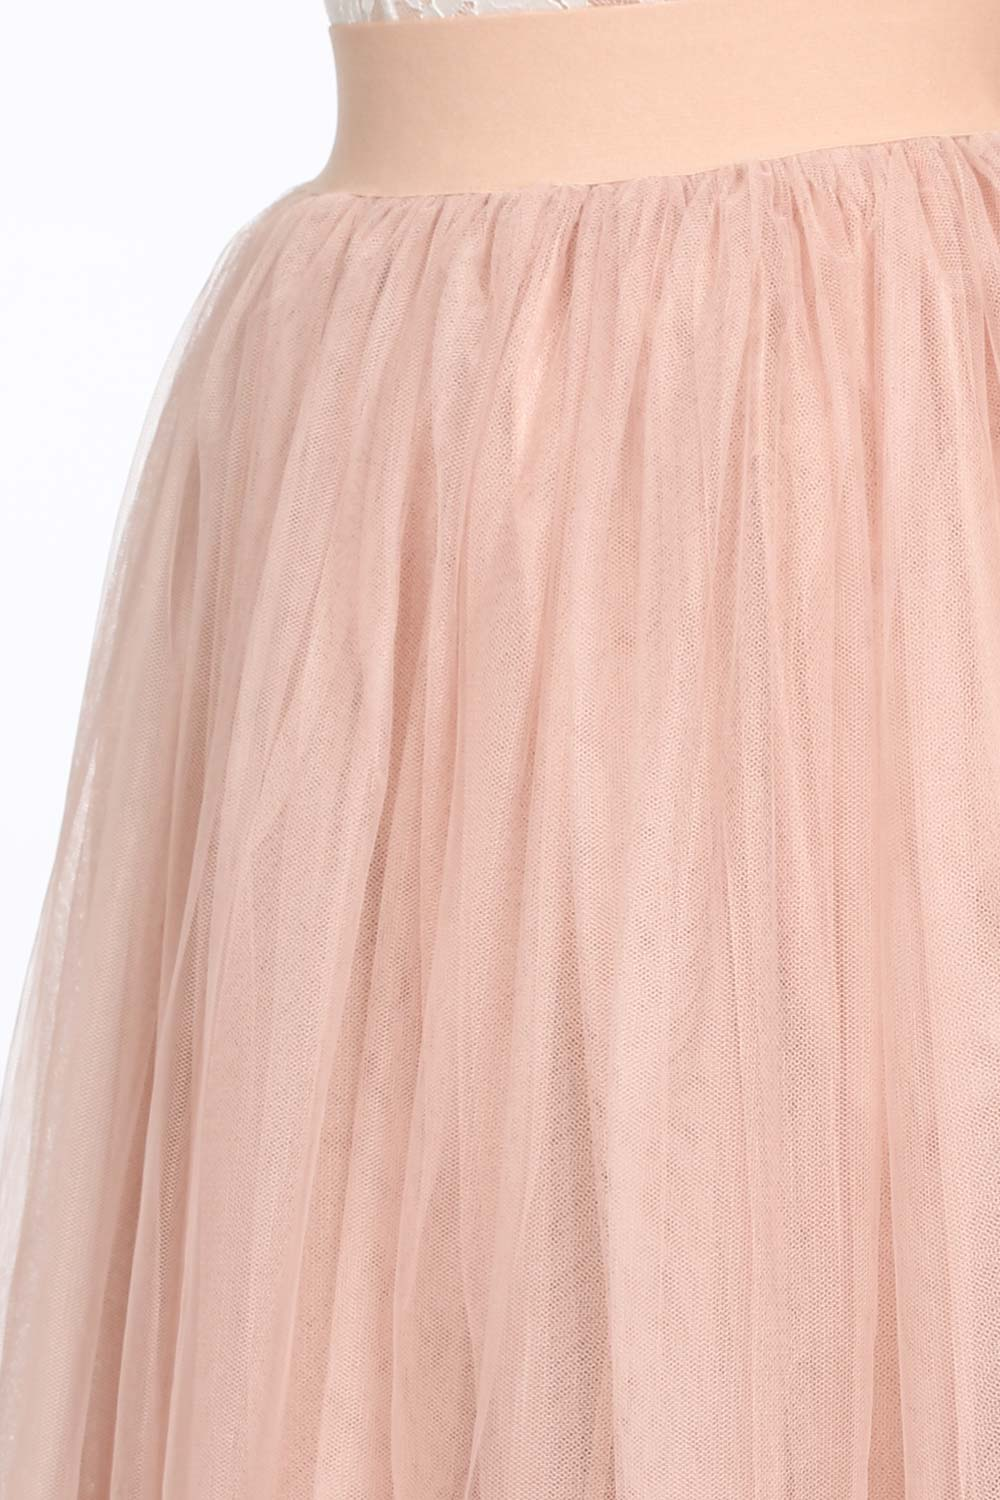 Midi Tulle Skirt In Nude Pink